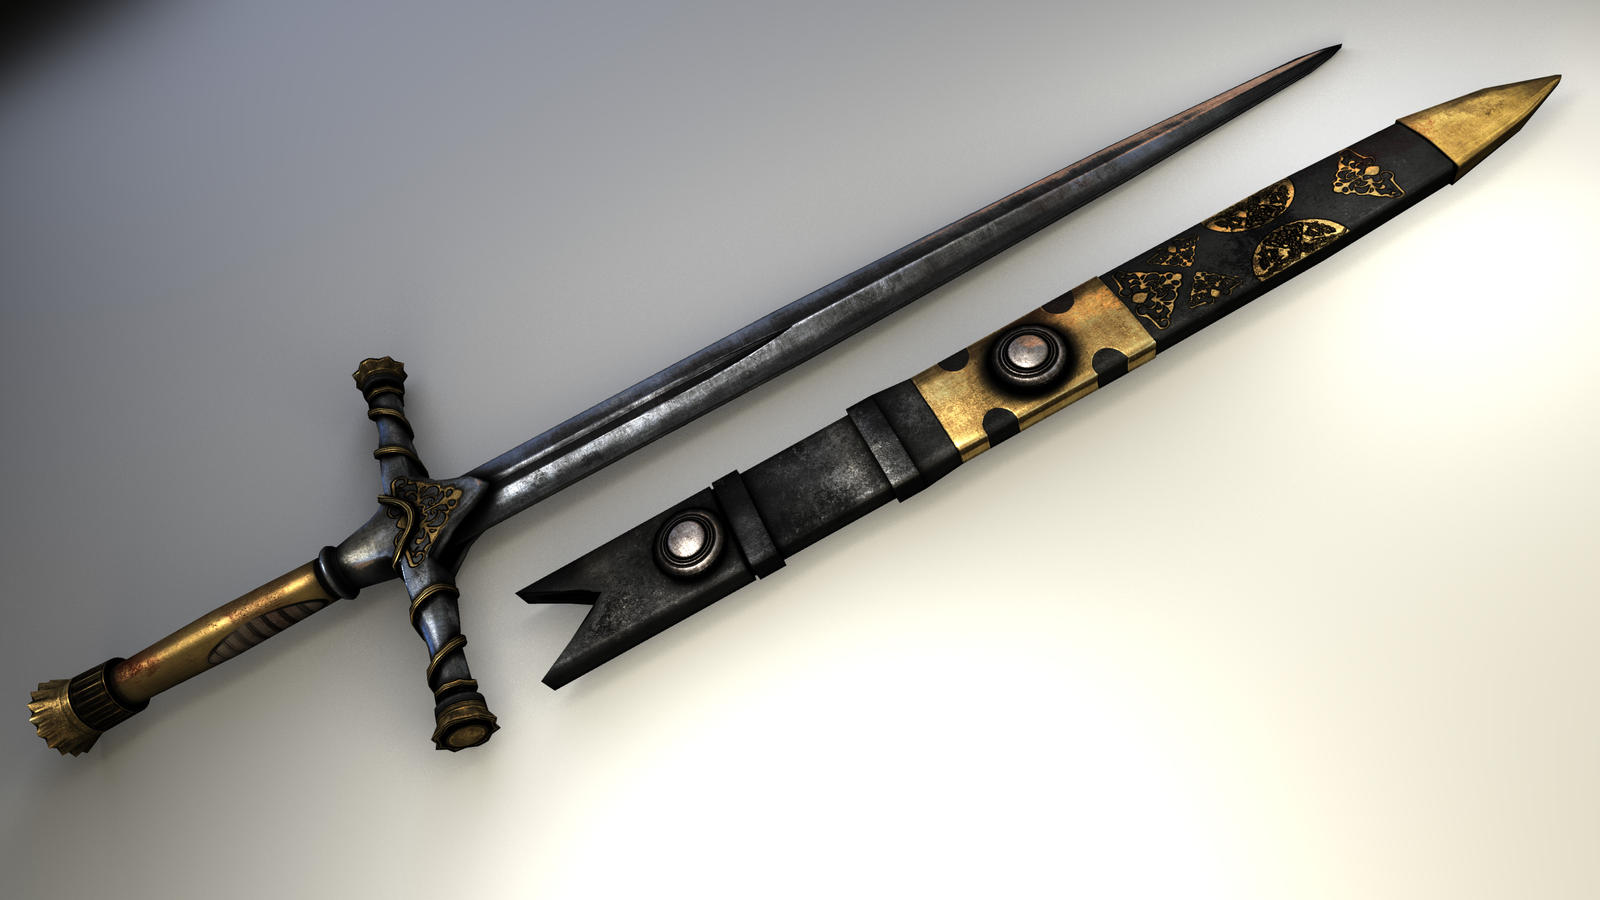 Jaime Lannister's Sword by dazzerfong on DeviantArt